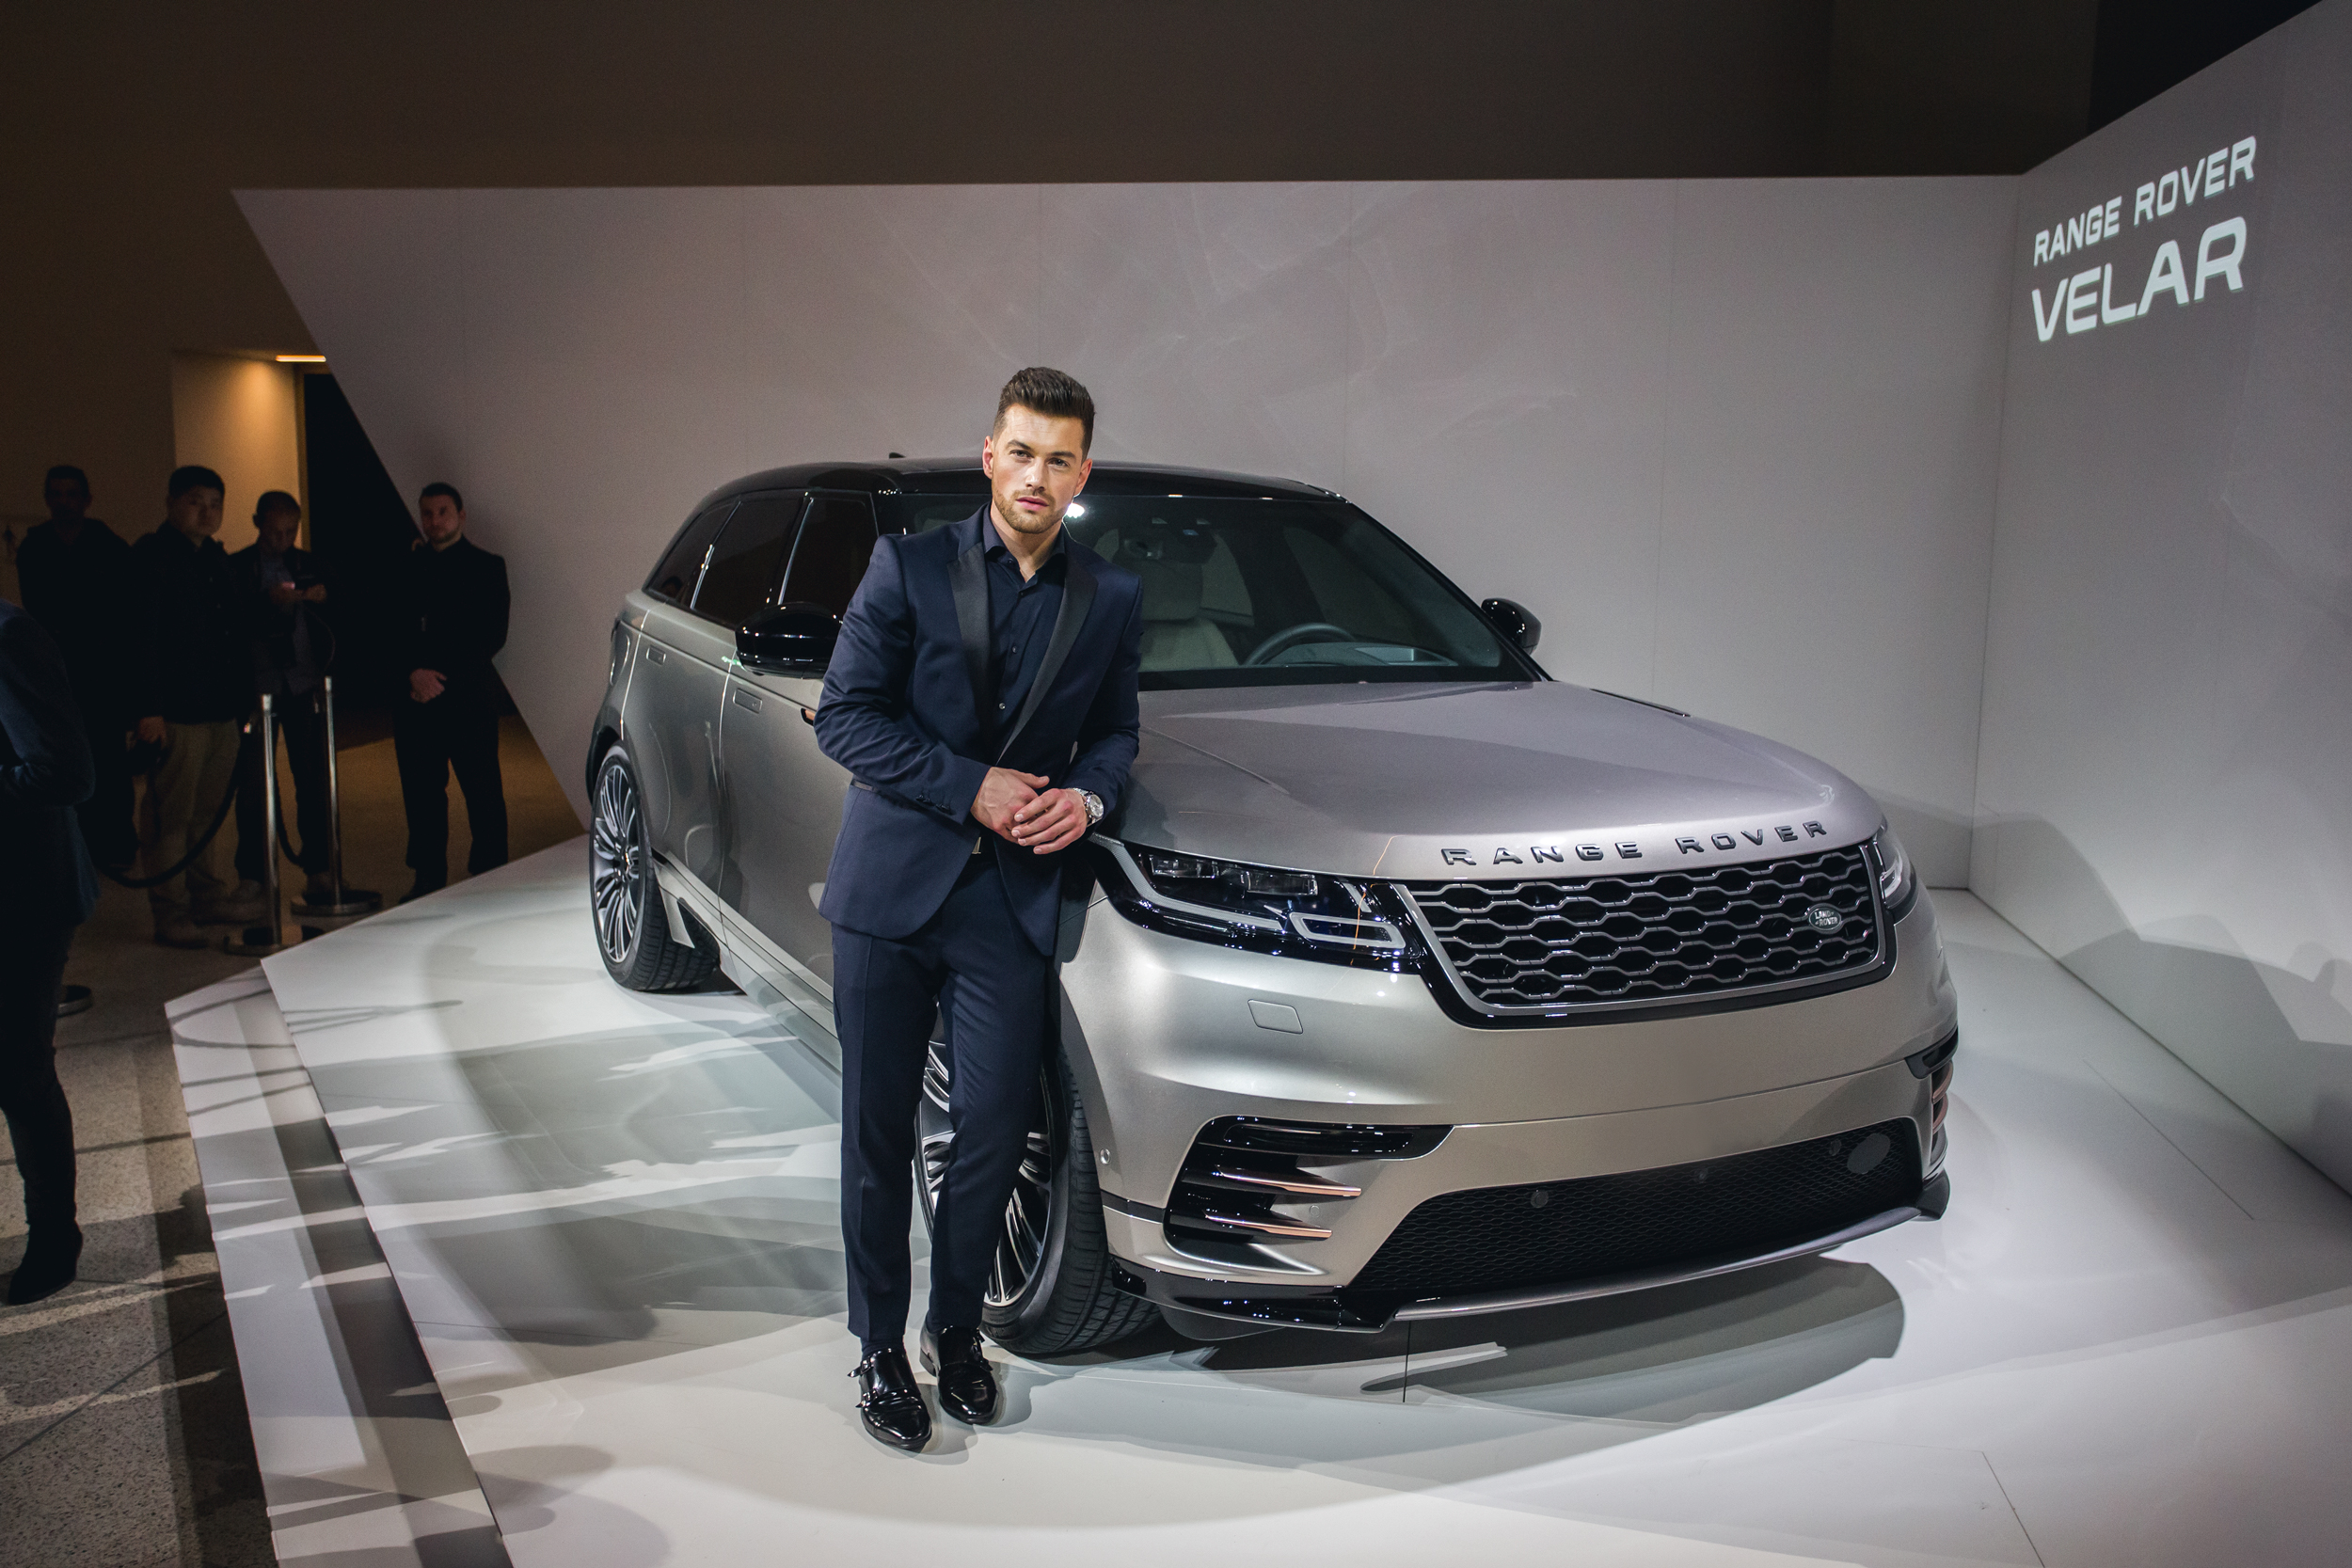 Range Rover - Velar Launch Event